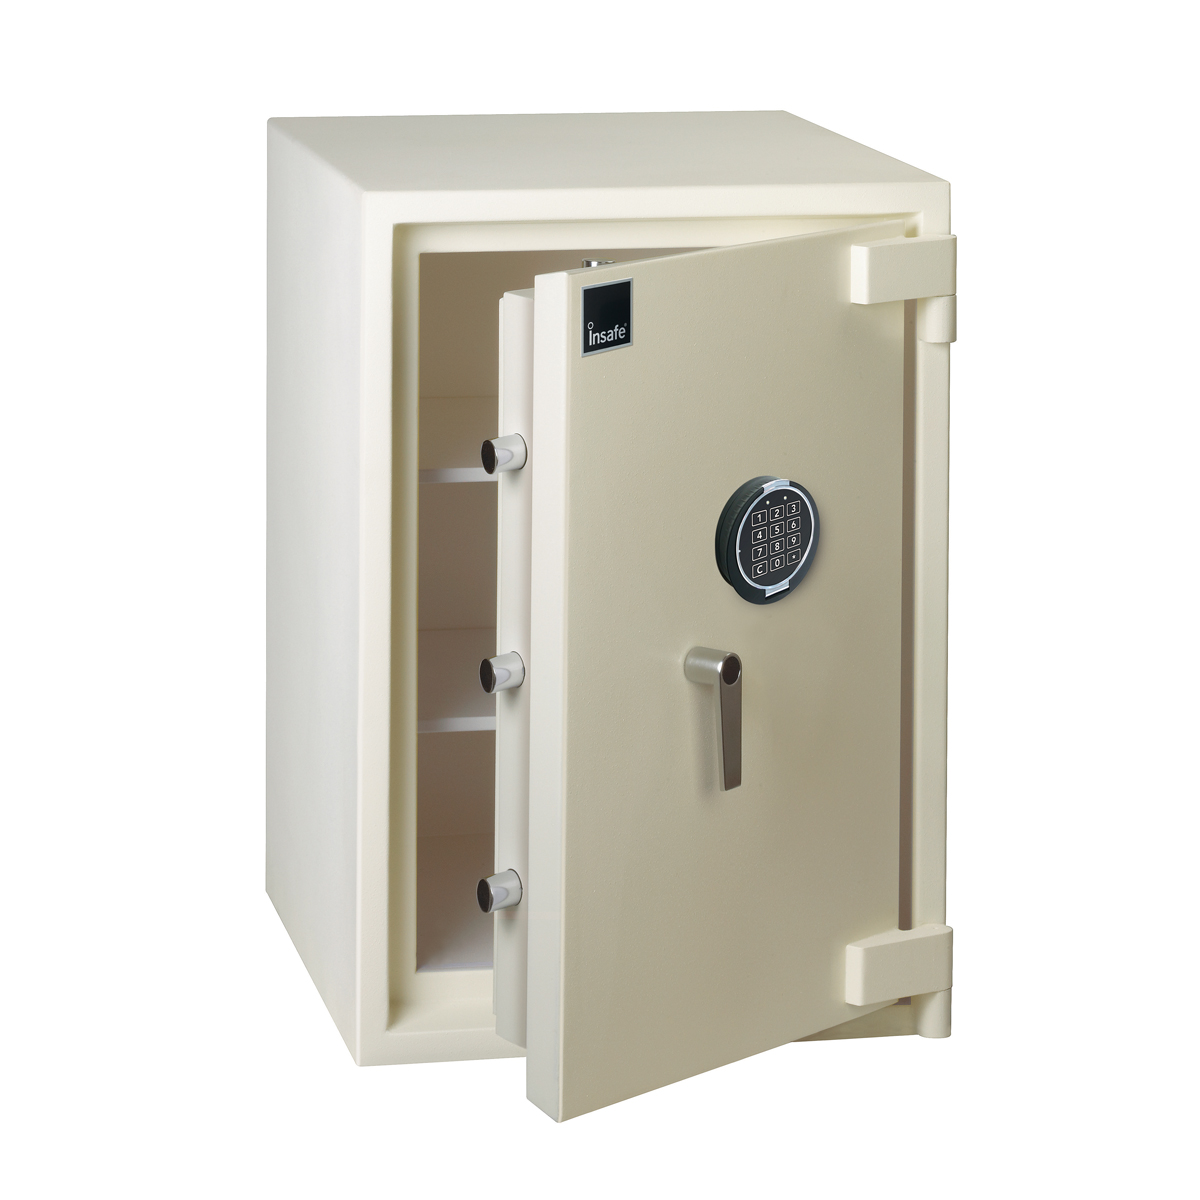 Insafe Grade III • Size 140 • Electronic Locking Safe